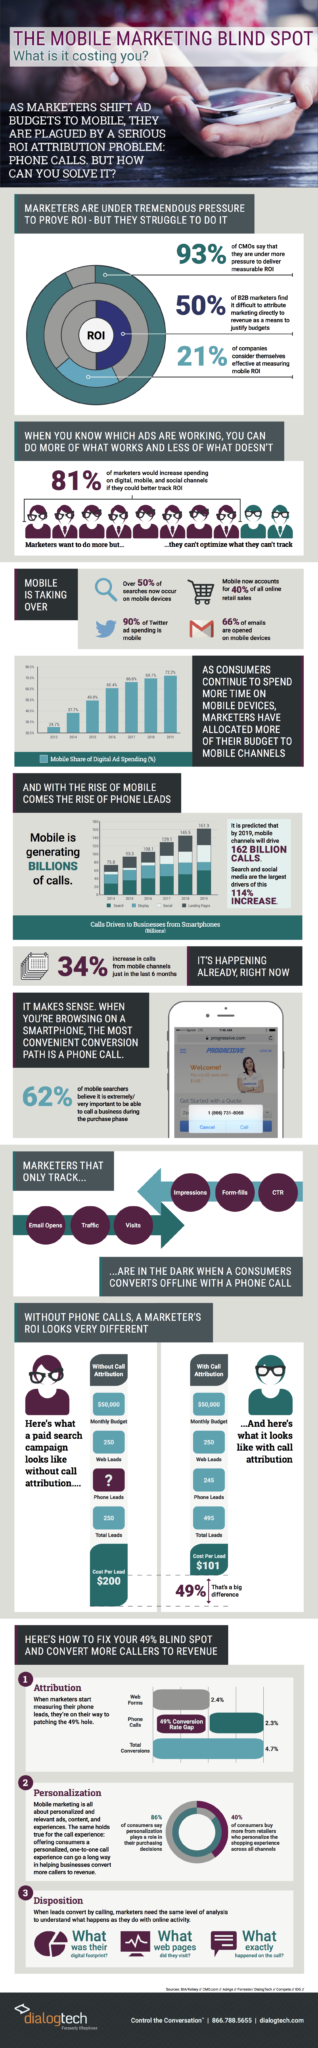 mobile marketing making a call